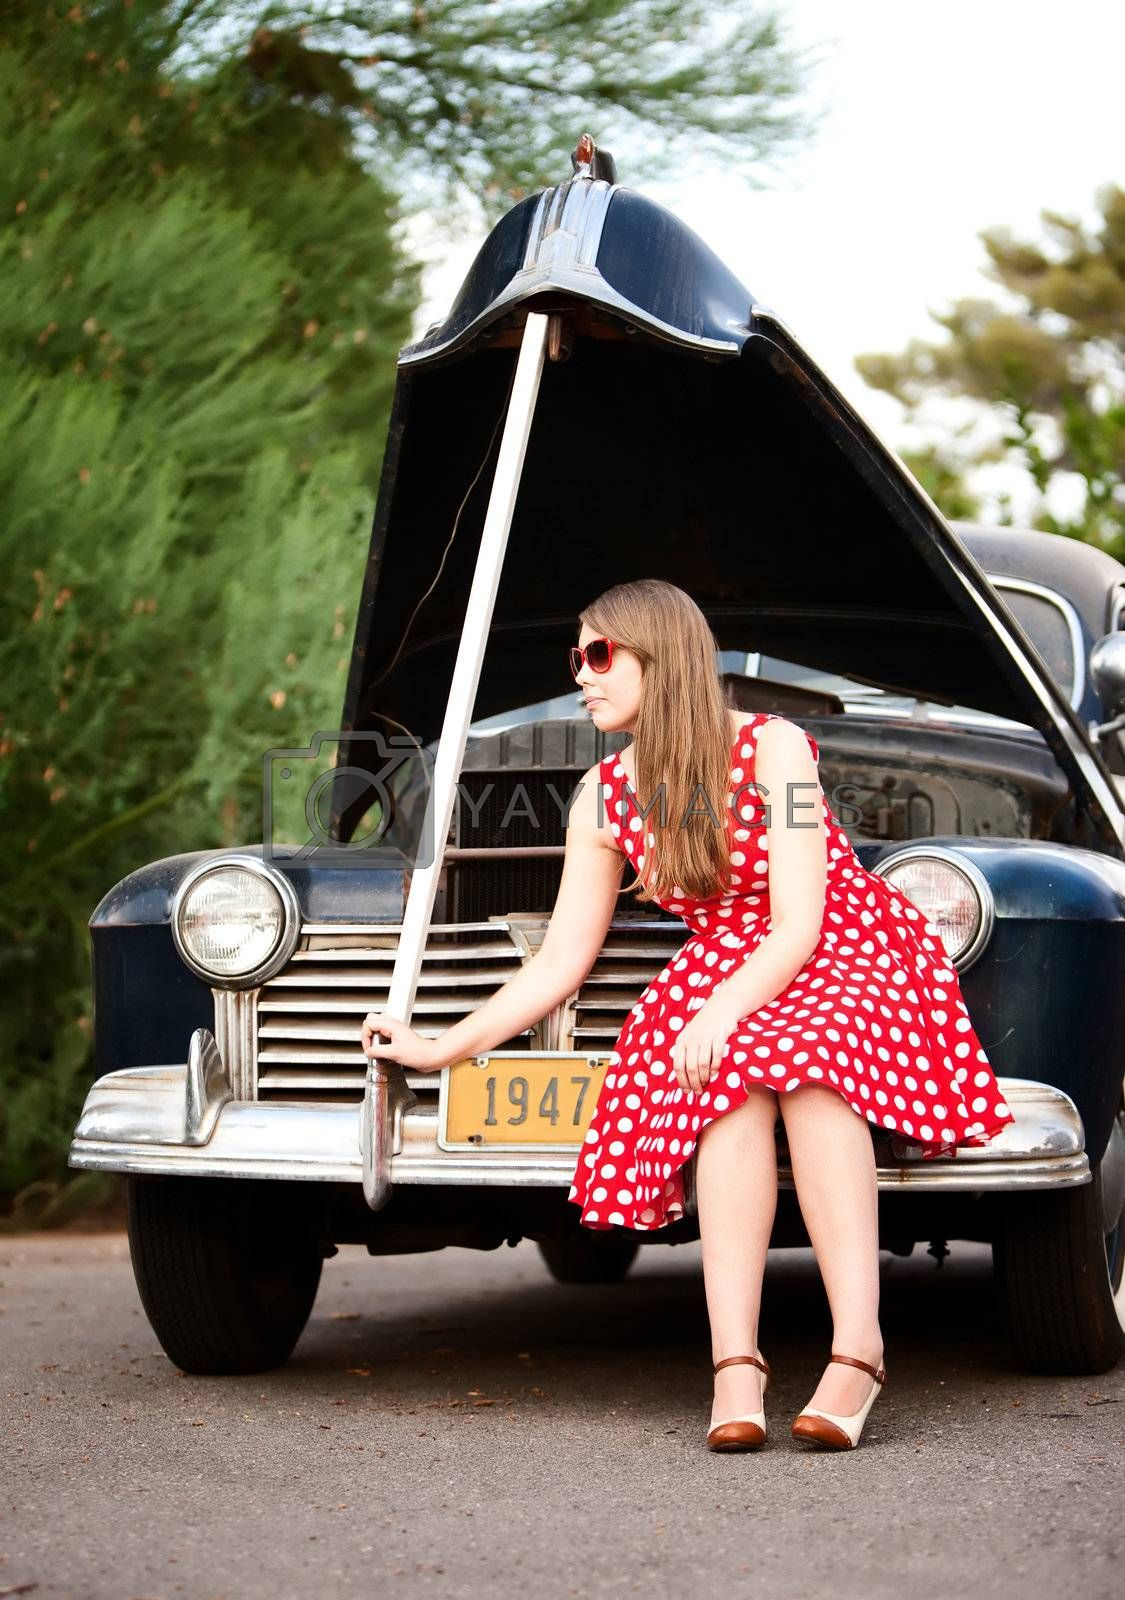 Royalty free image of Girl in red with vintage car by Creatista